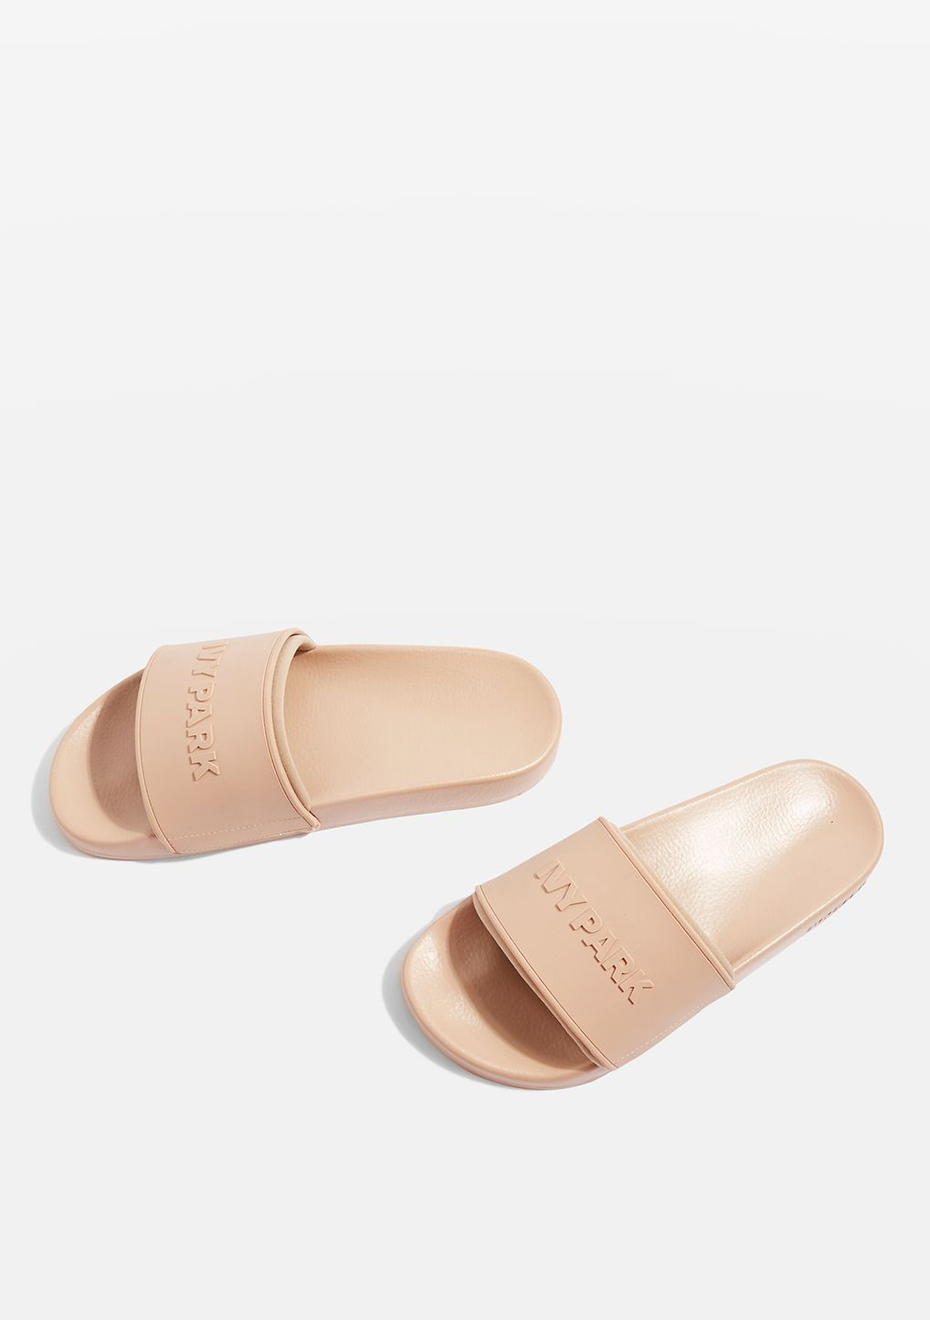 Ivy Park - Neo Lined Embossed Logo Slides - Dusty Pink - Ivy Park - Onceit